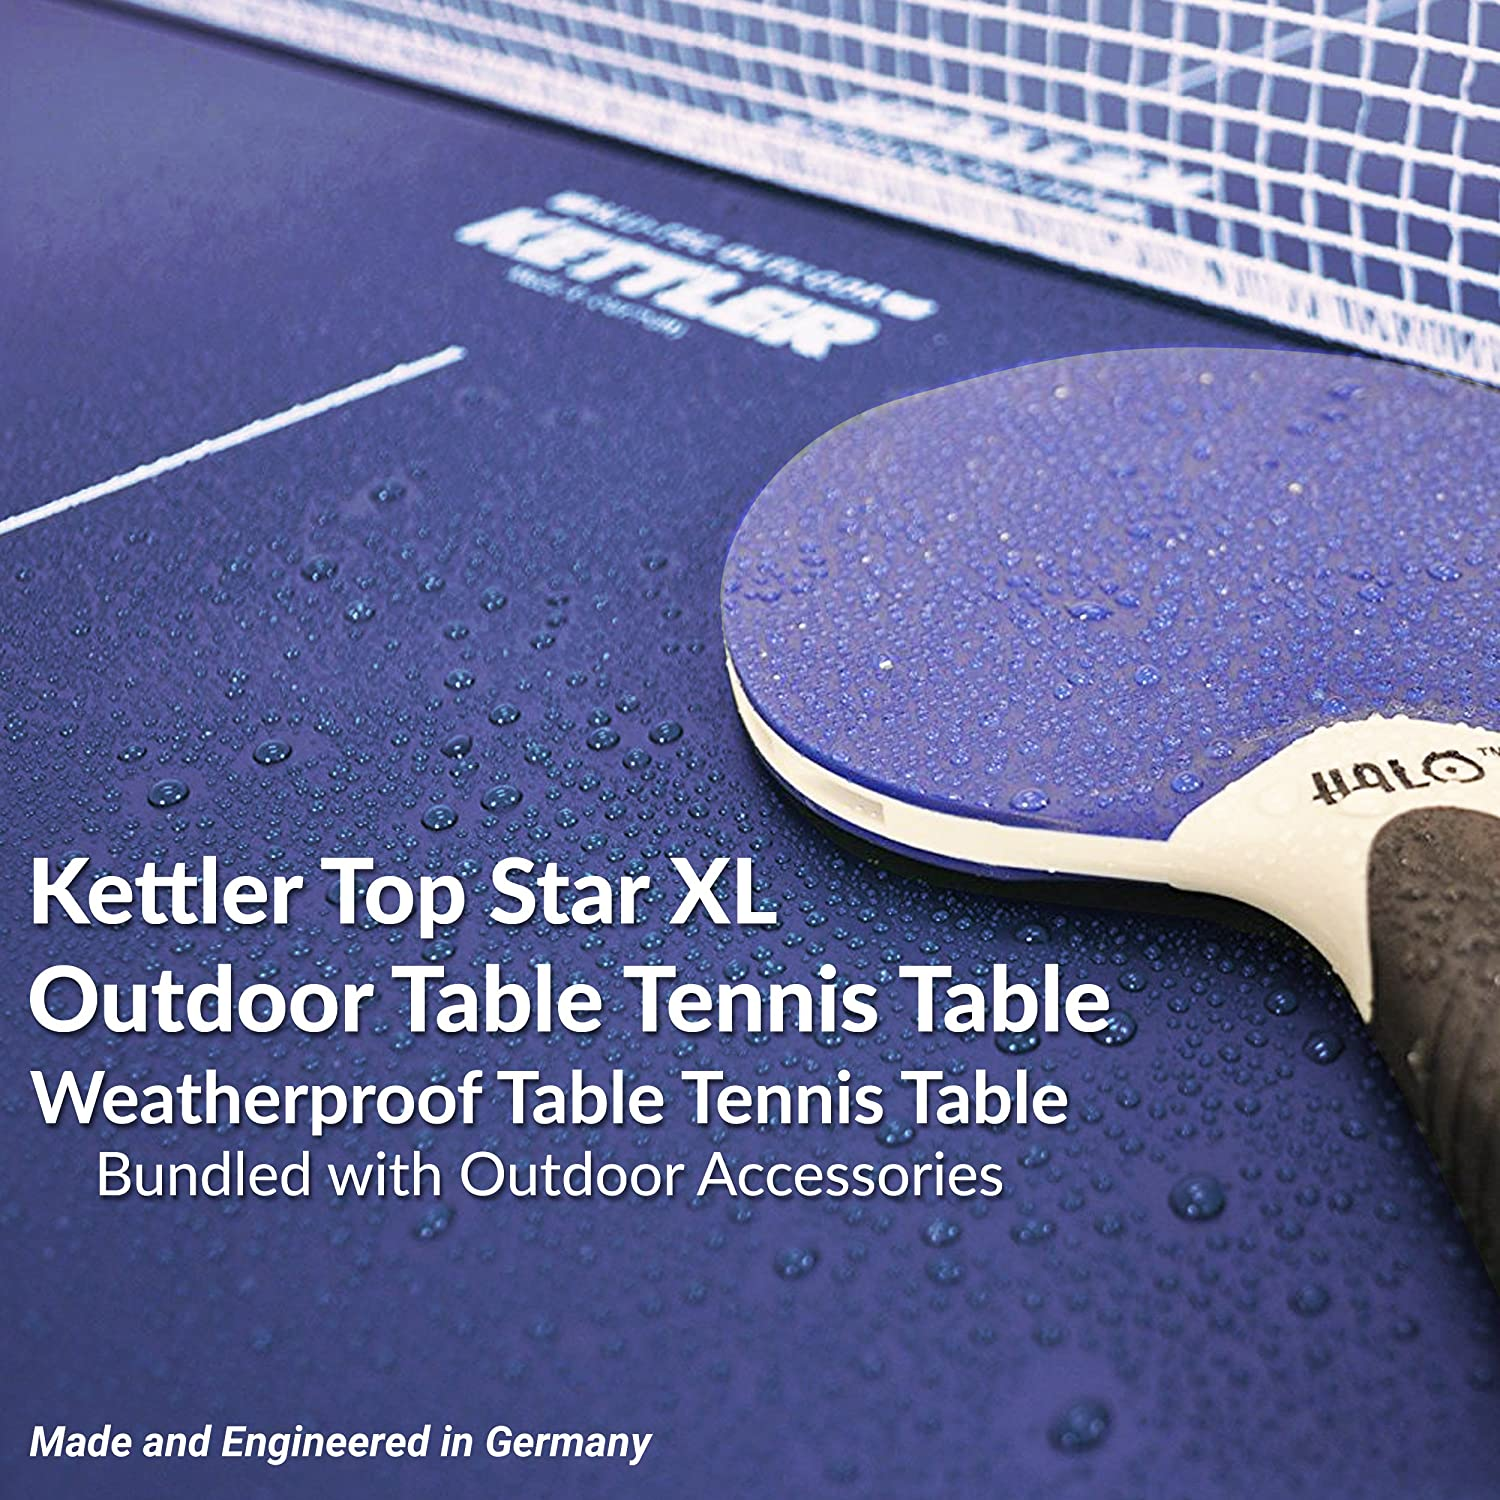 Kettler Top Star XL Weatherproof Table Tennis Table With Outdoor Accessory  Bundle: Amazon.co.uk: Sports U0026 Outdoors